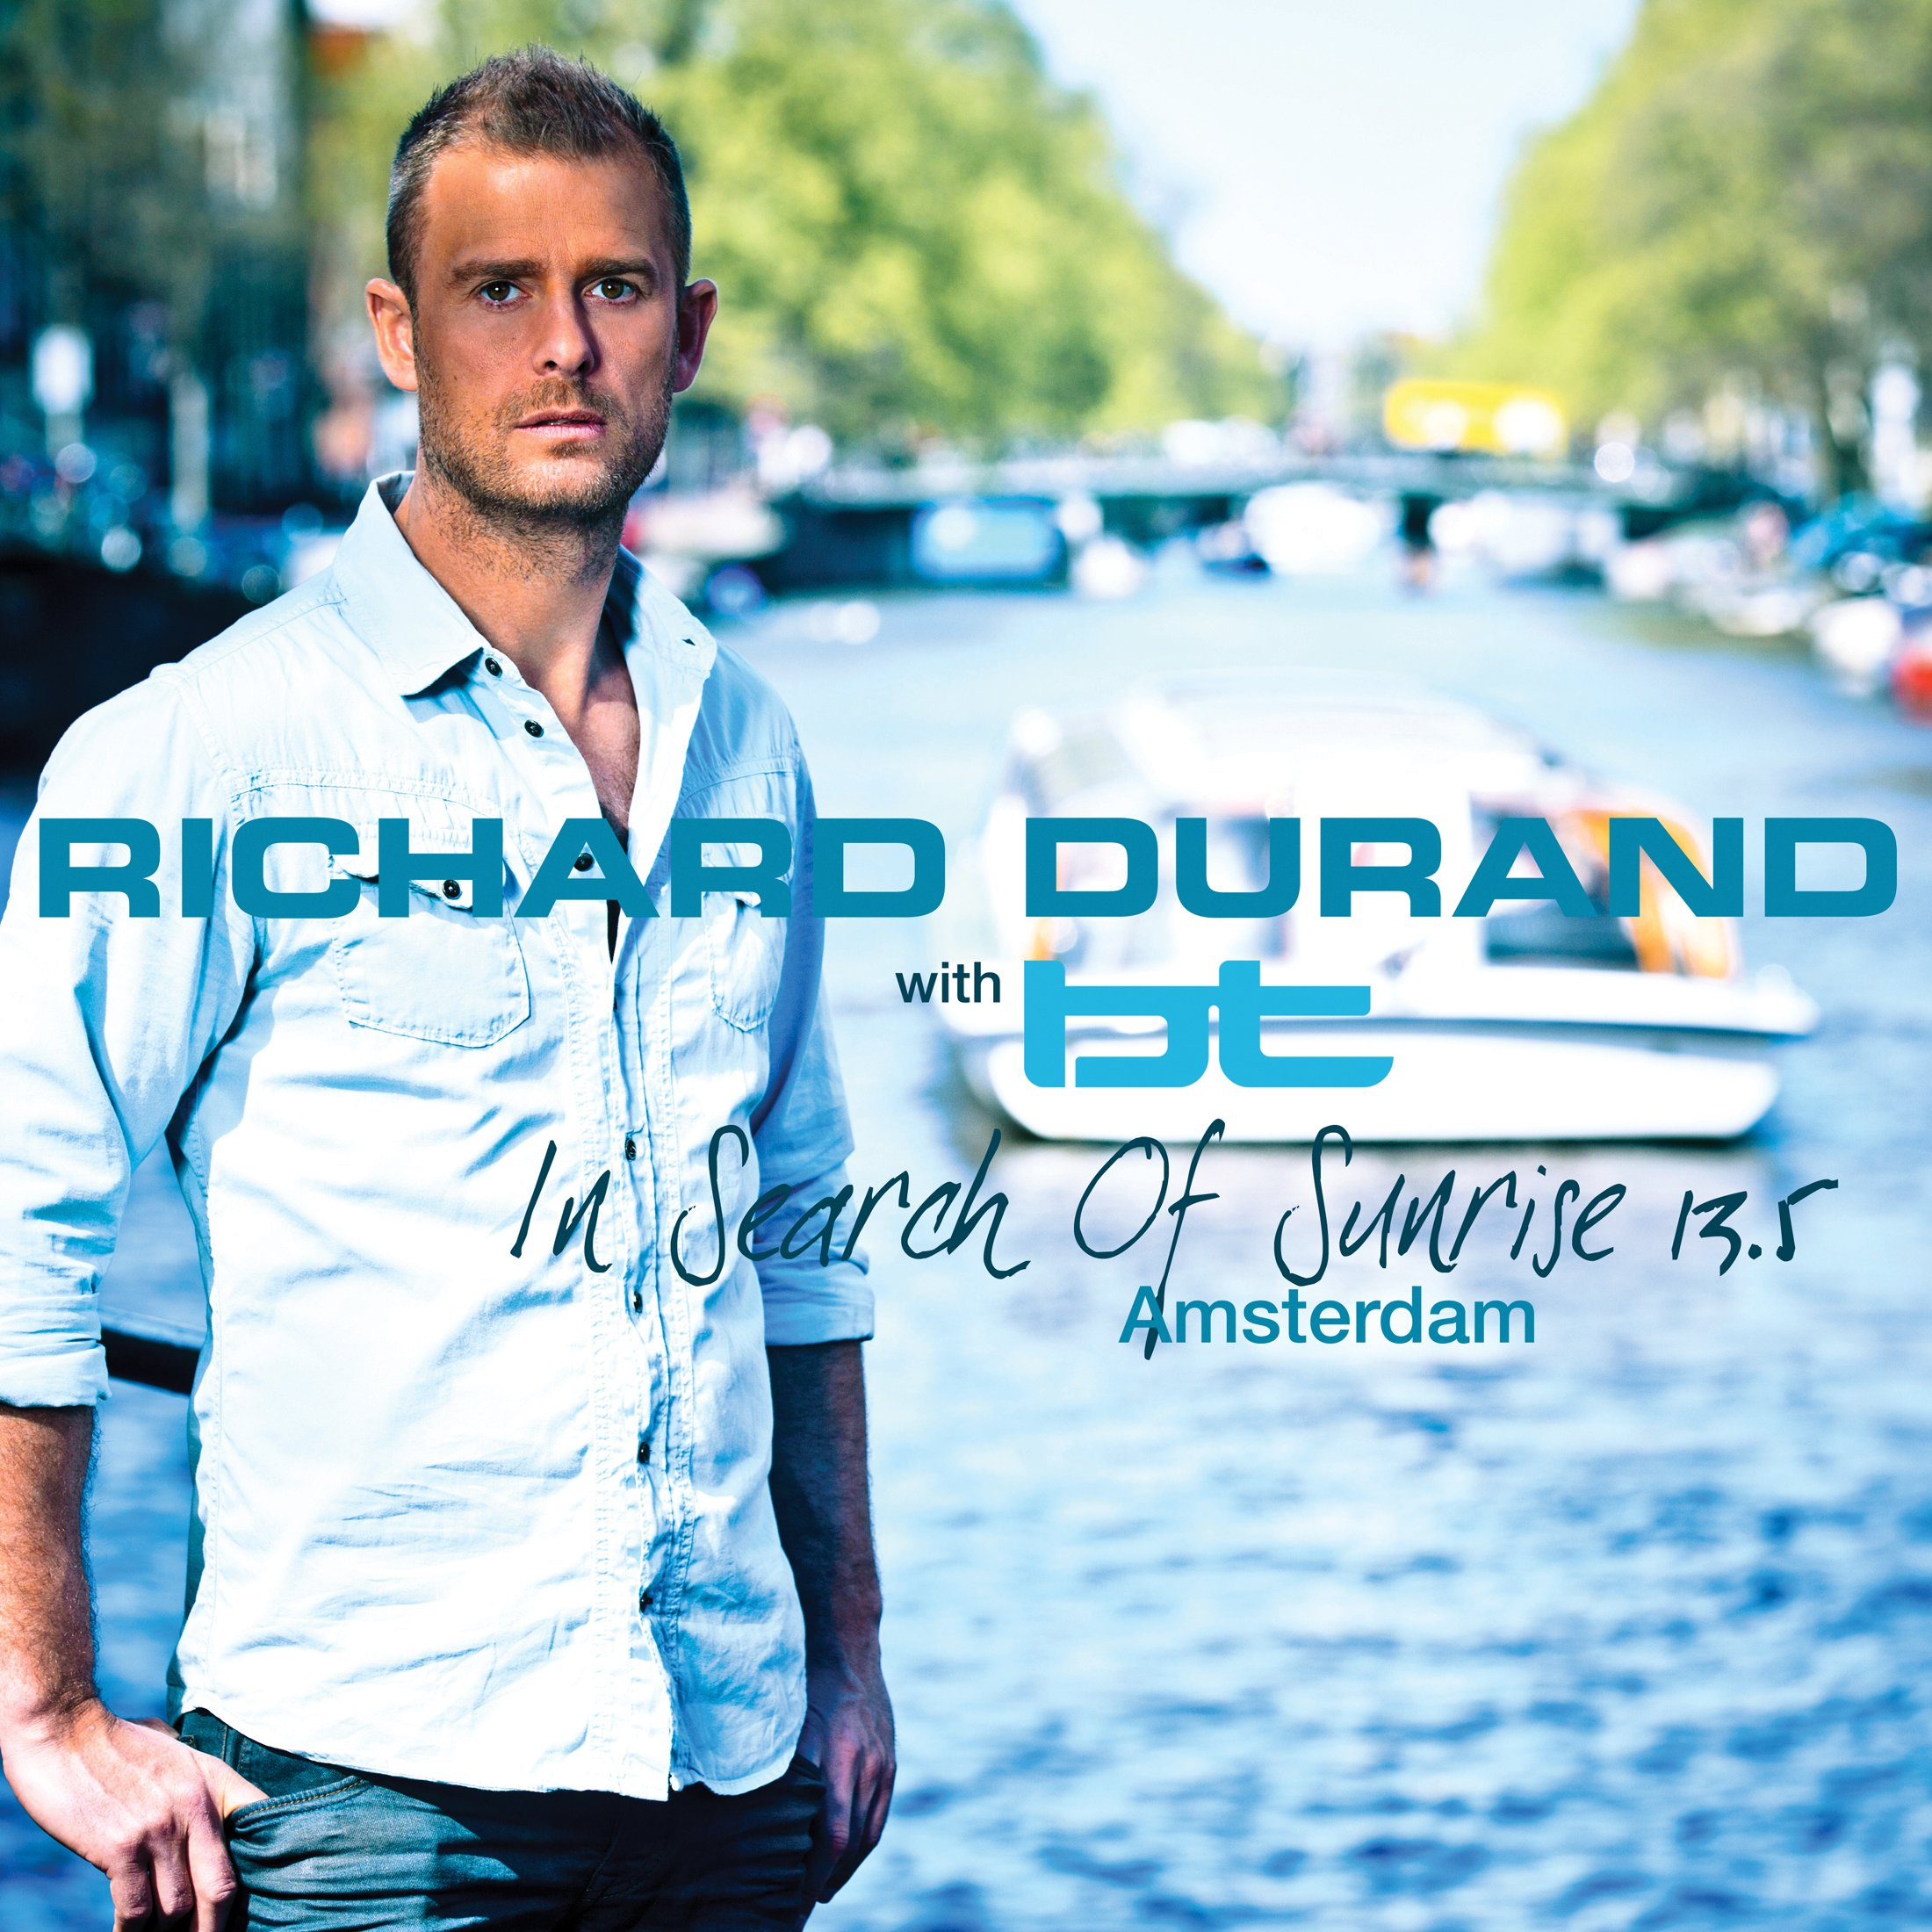 VA – In Search Of Sunrise 13.5 Amsterdam  Richard Durand with BT (2015) [FLAC]